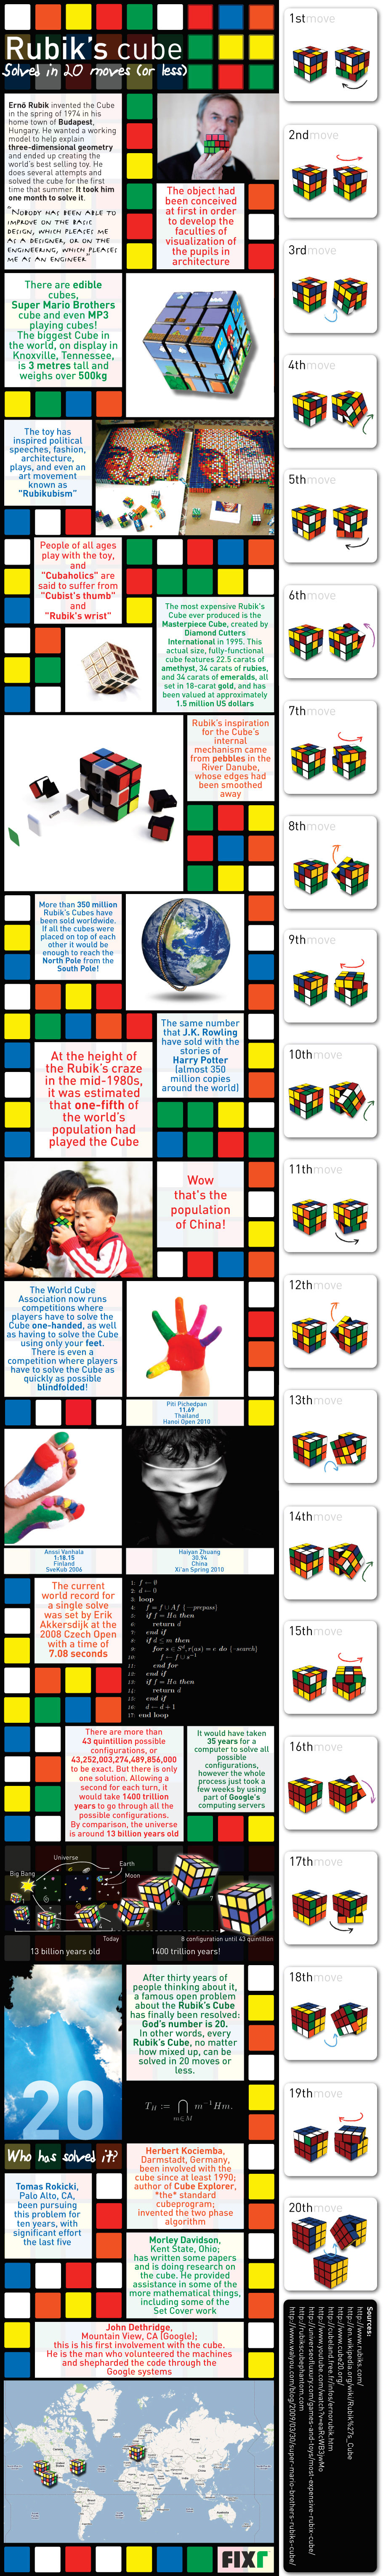 Rubiks-Cube-Solved-in-20-Moves-or-Less_270115